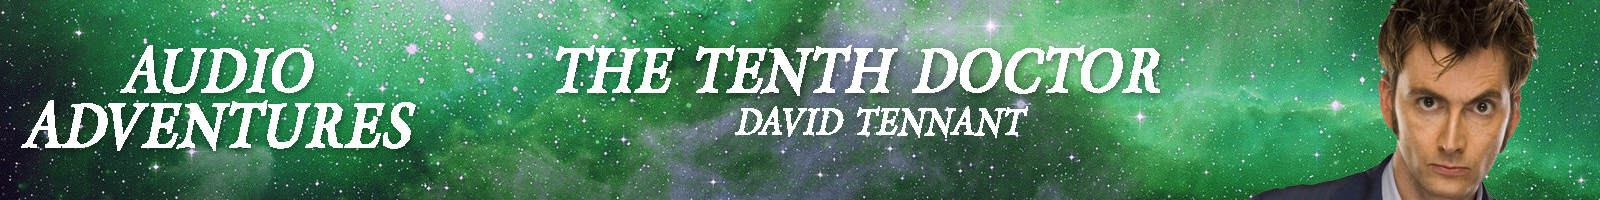 The Tenth Doctor Audio